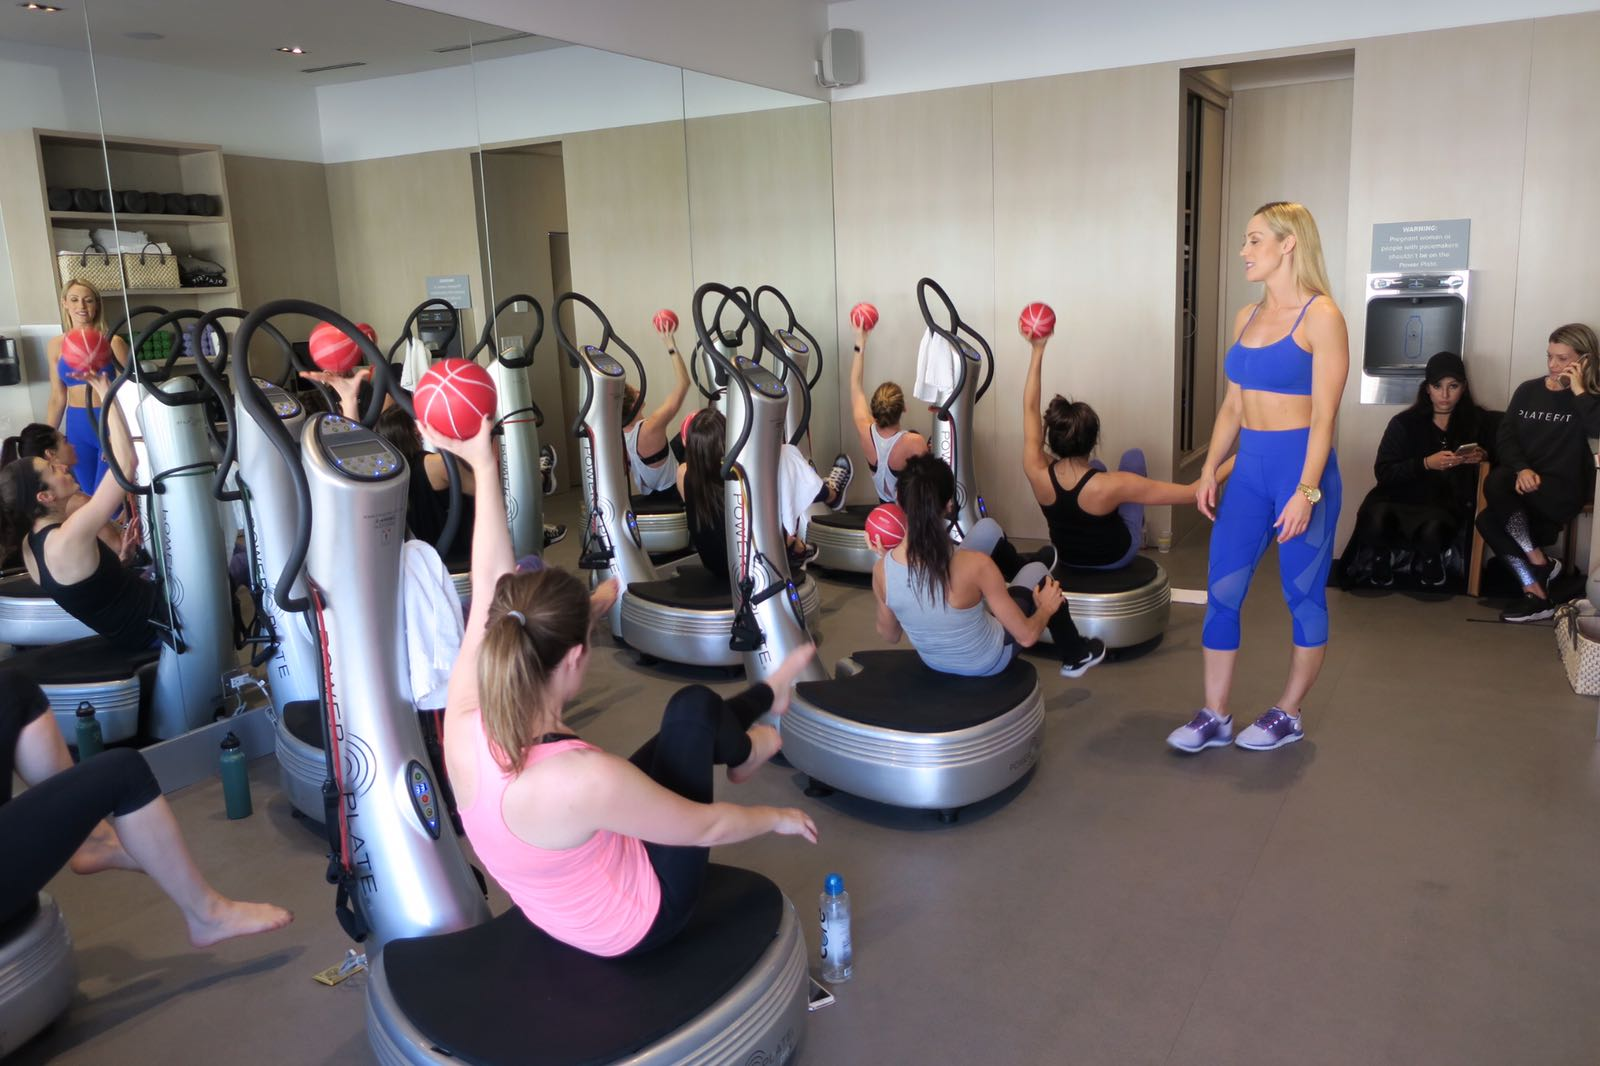 Caroline Pearce instructing Power Plate class at 'Train like a Gladiator' event